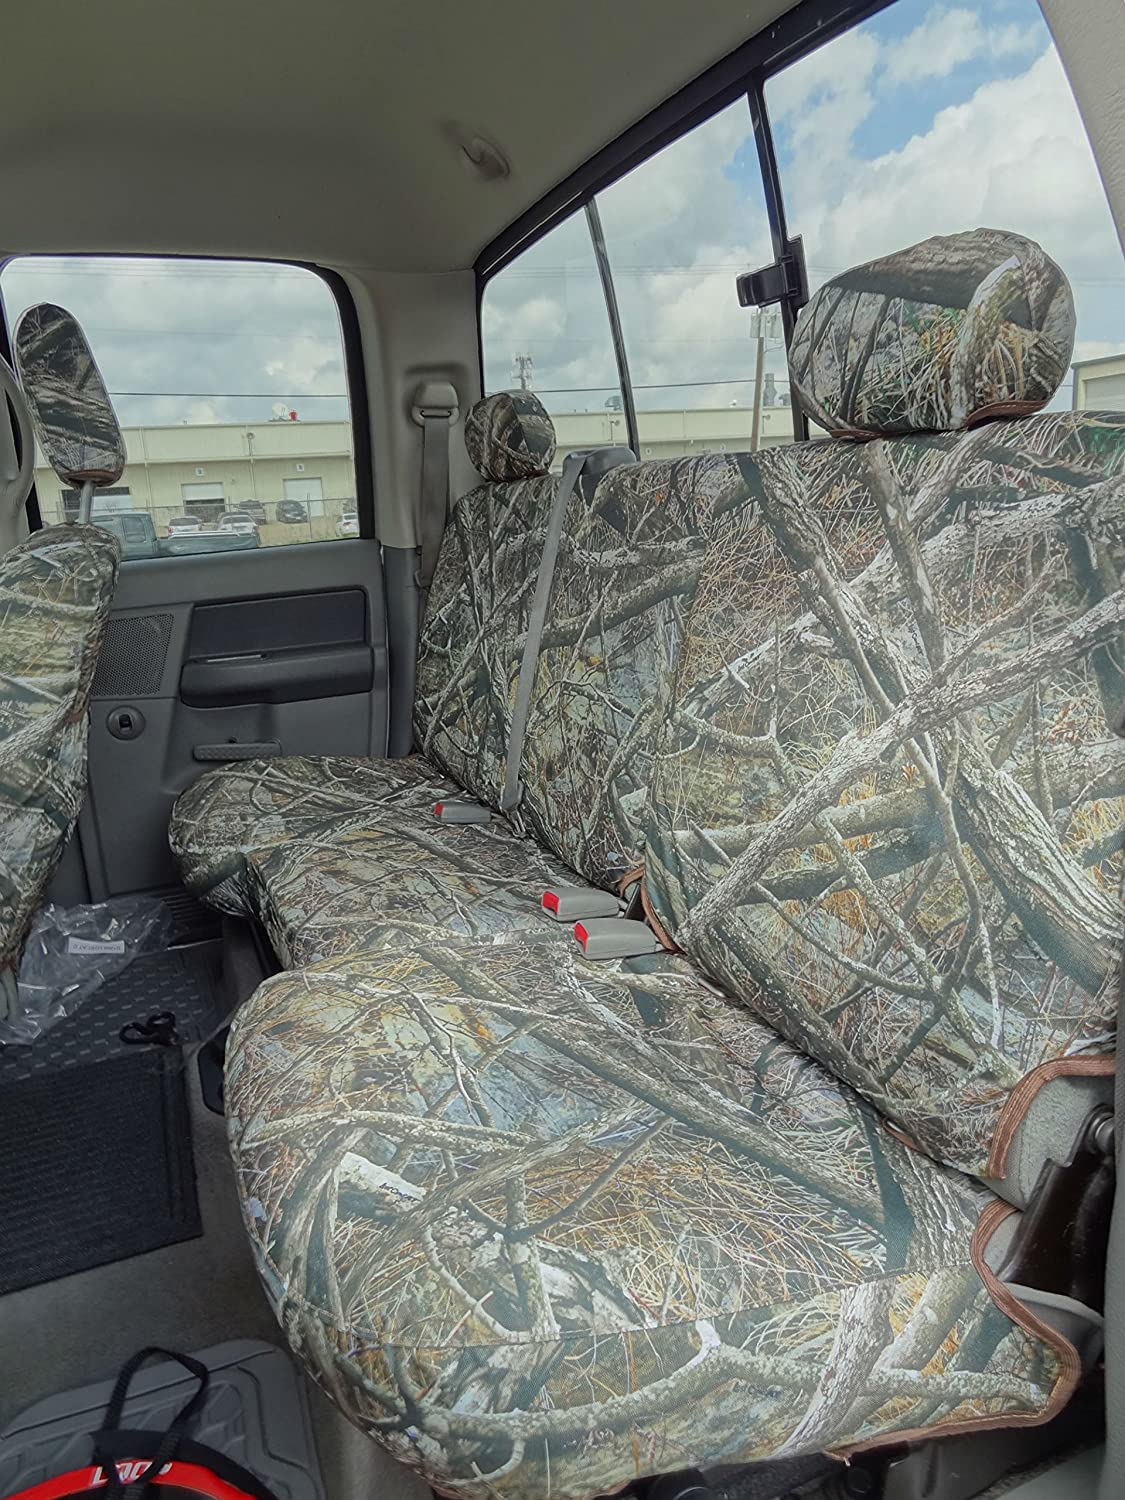 Durafit Seat Covers, D1290 Camo Endura Seat Covers for 2003-2009 Dodge Ram Crew Cab Rear 40/60 Split Bench Seat with Adjustable Headrests